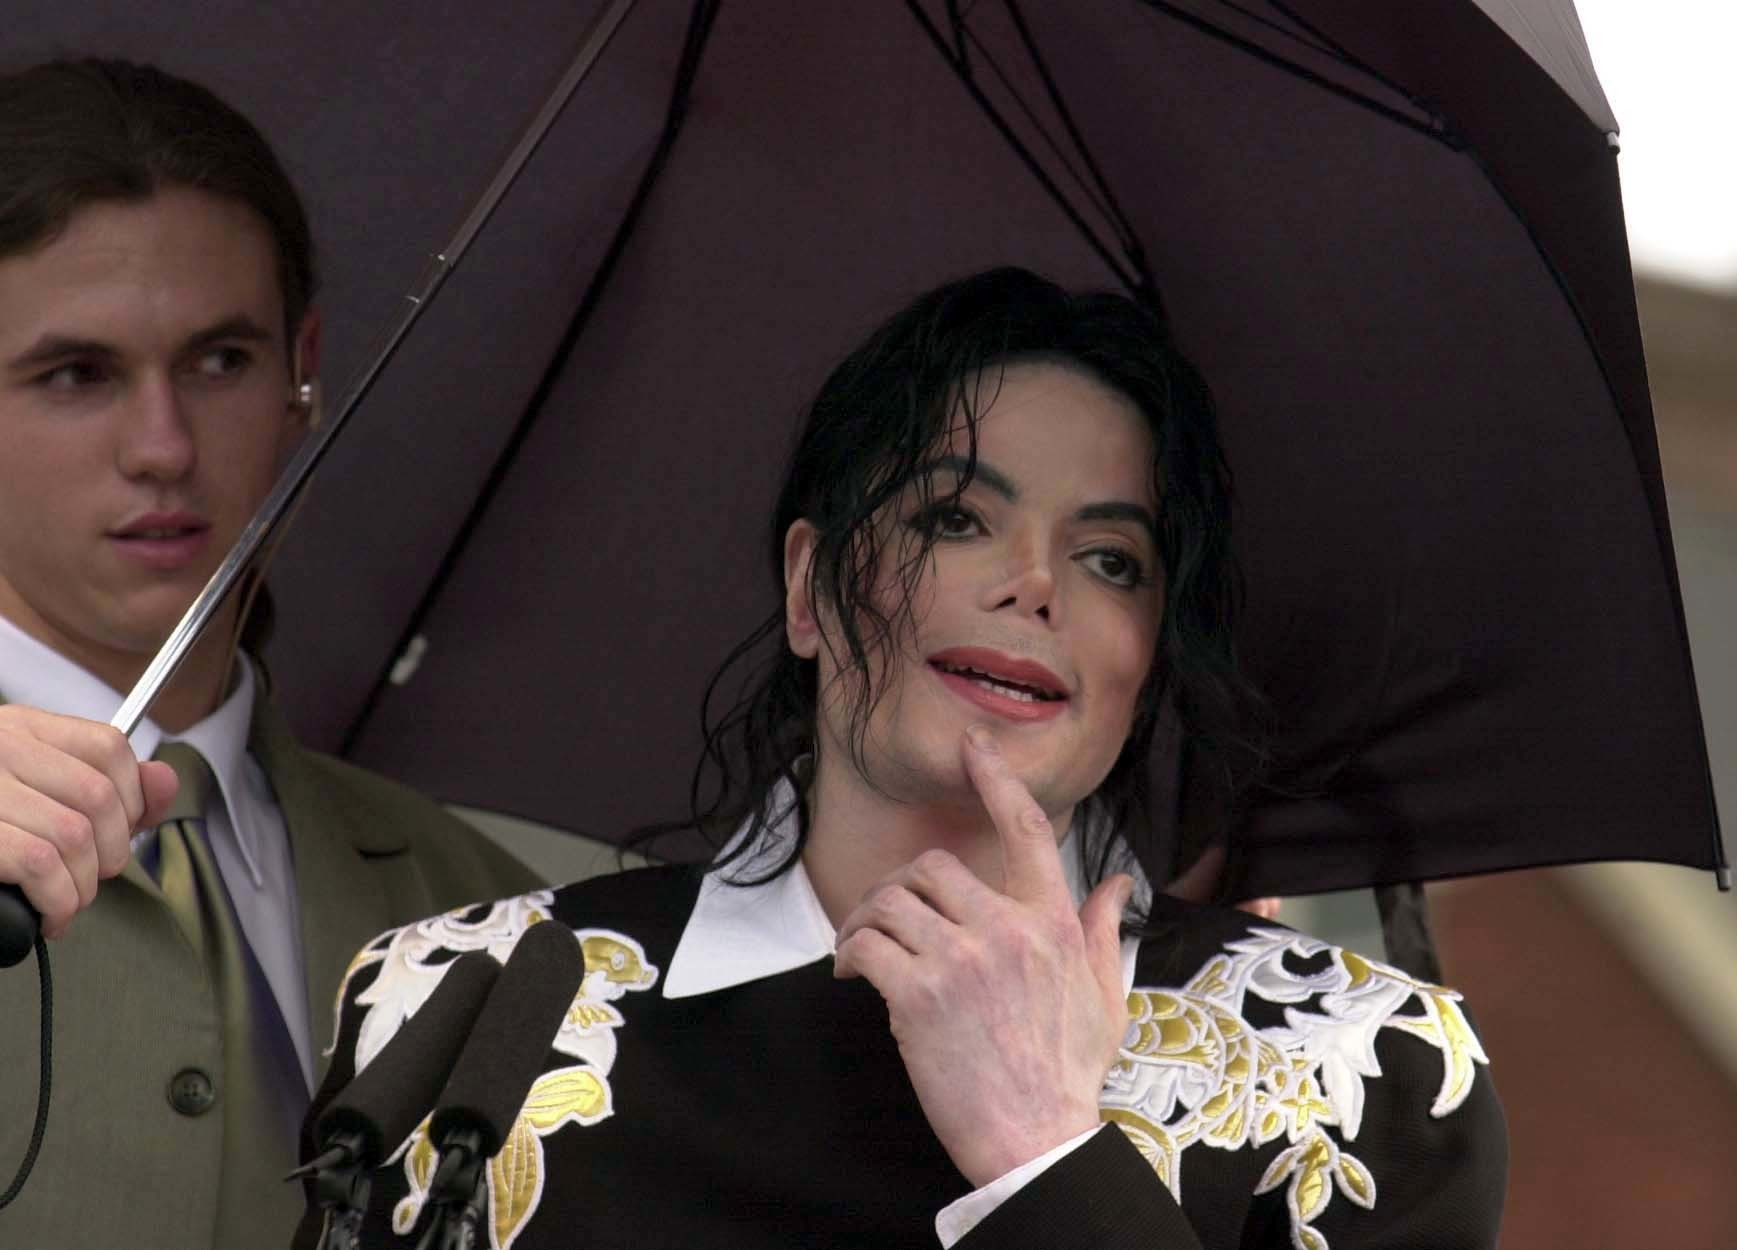 Pop legend Michael Jackson attends a fundraising event in aid of Children with Aids and Support for Africa at Exeter Football Club at St James Park, Exeter in Devon.  *15/06/02 Michael Jackson. Pop legend Michael Jackson has backed England's football team to beat Denmark in today's, Saturday 15th June 2002, crucial second round World Cup match. The vote of confidence came as the singer maintained his oddball reputation by making an appearance at the ground of a third division soccer club.